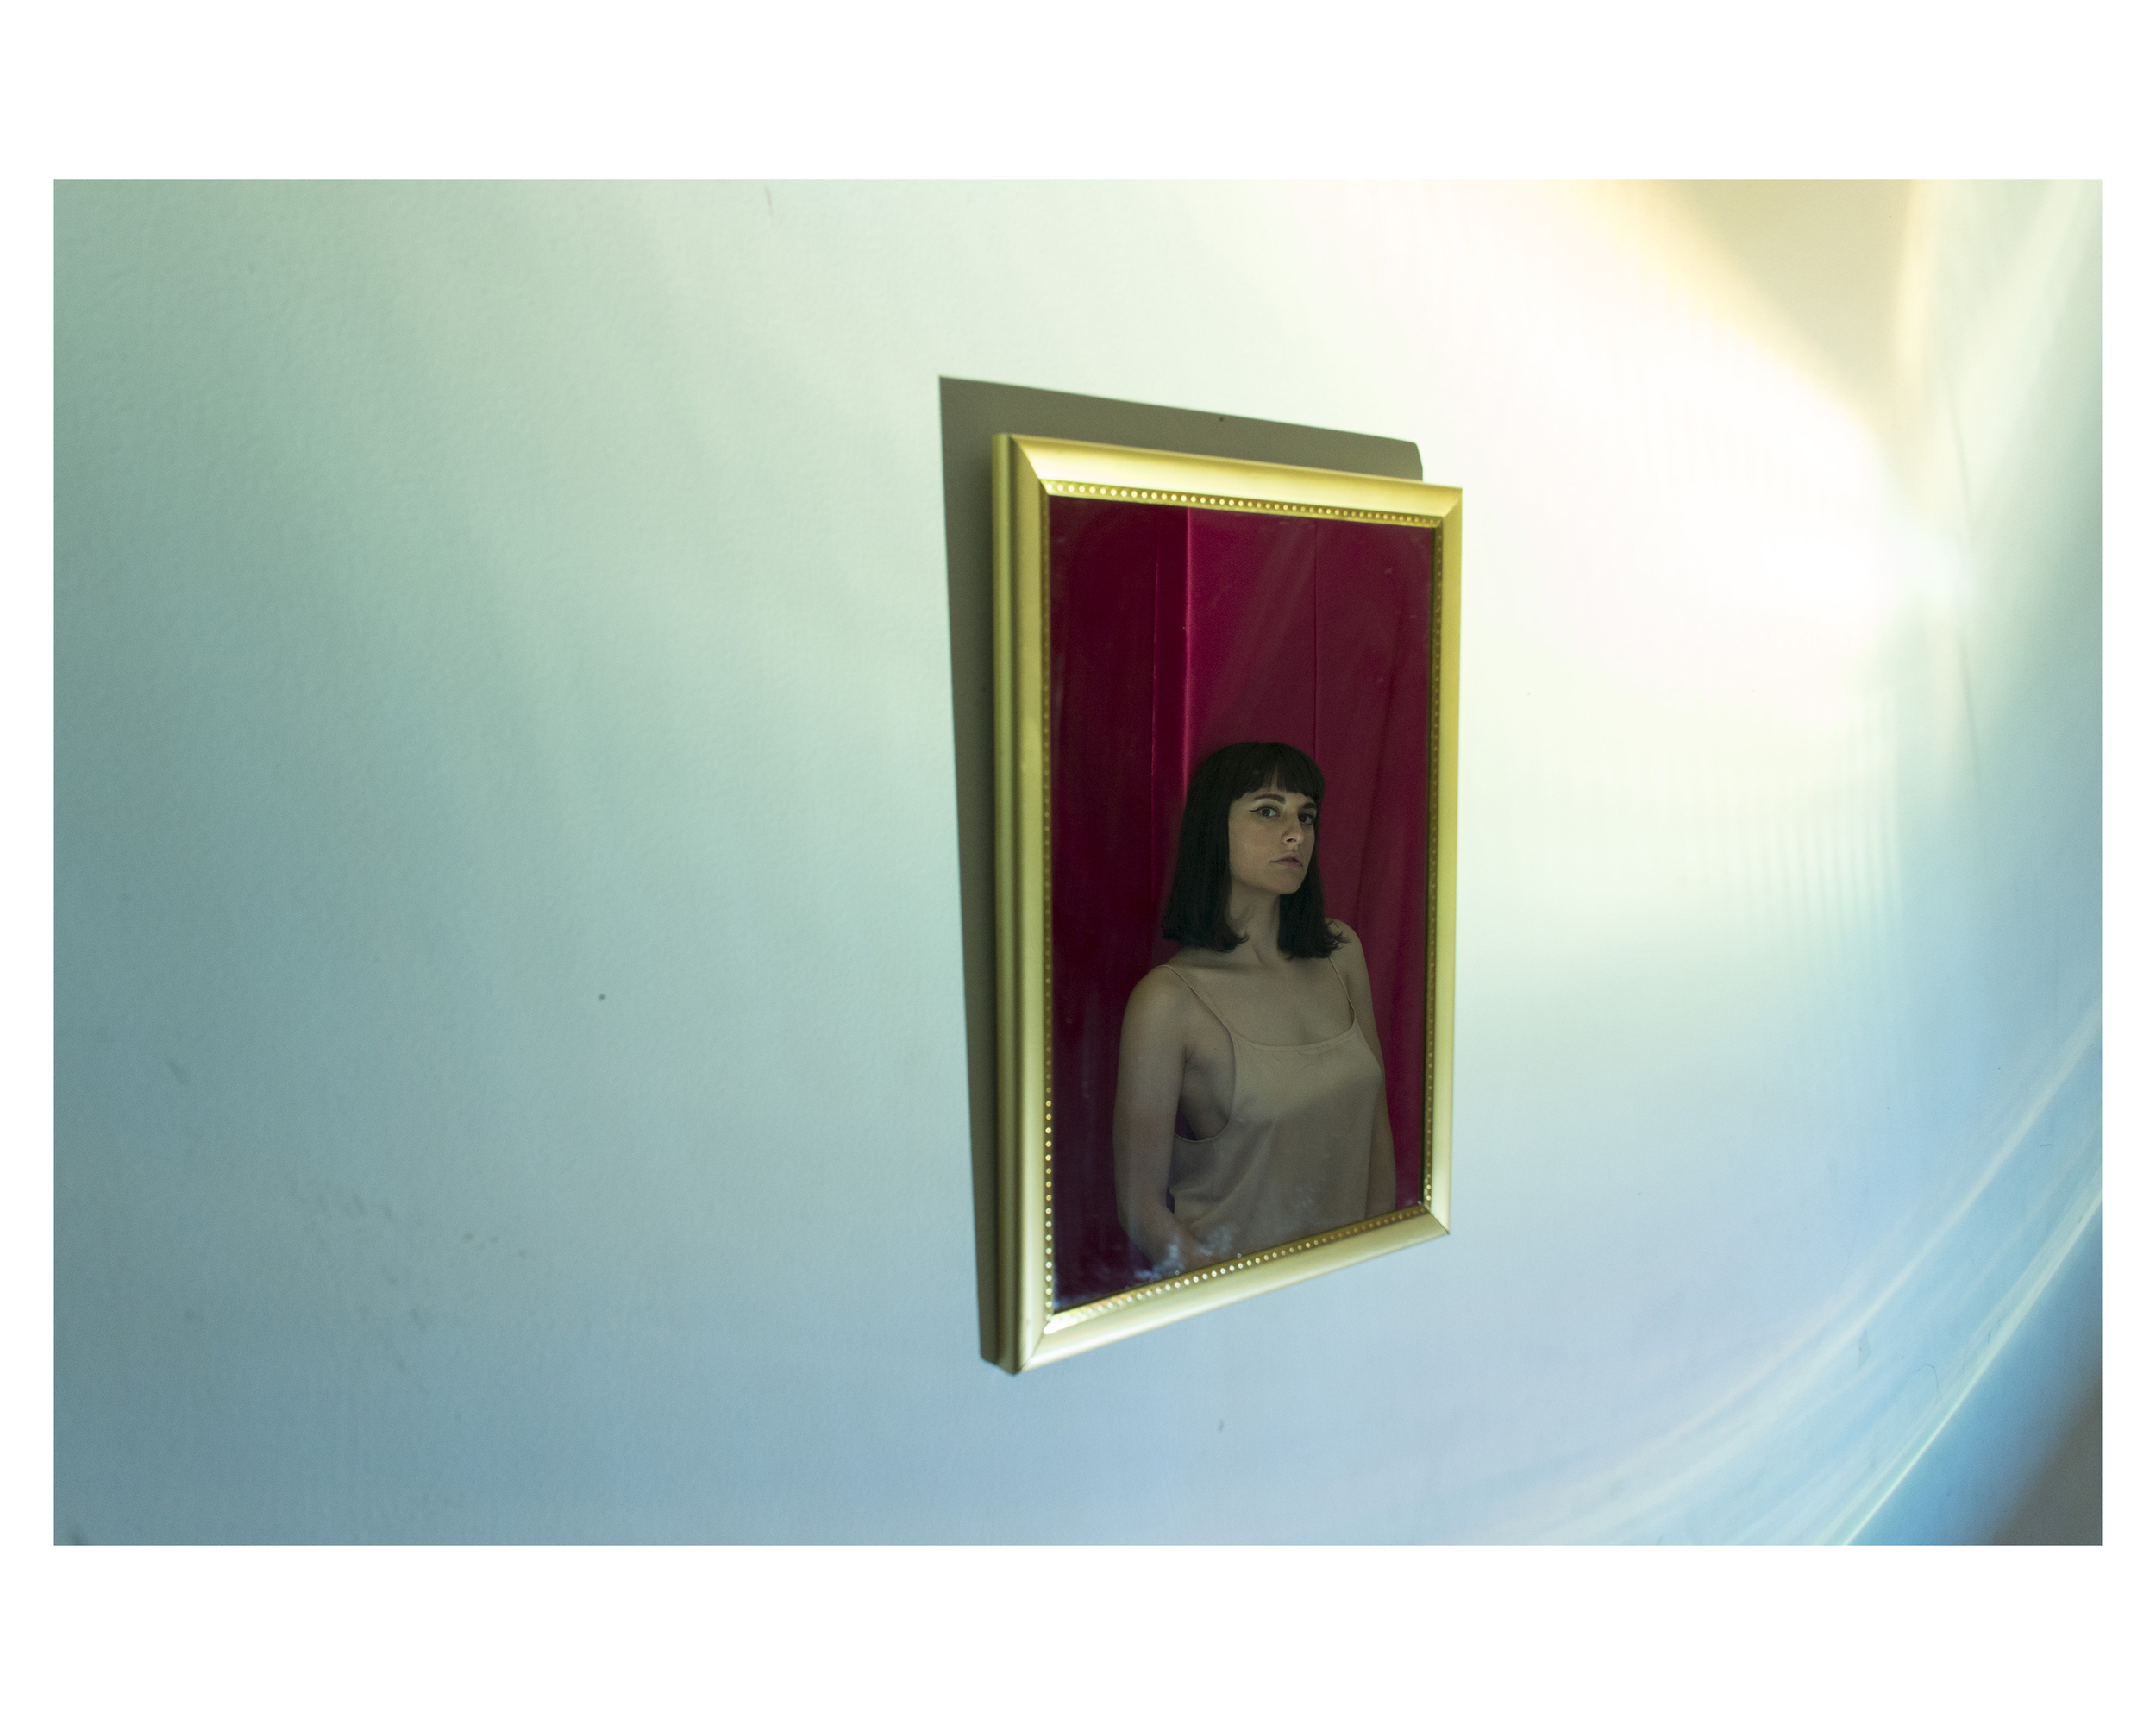 Jessi Lembo American, born 1993 (Untitled work from a series of self portraits),2015 Inkjet print on matte paper Courtesy the artist